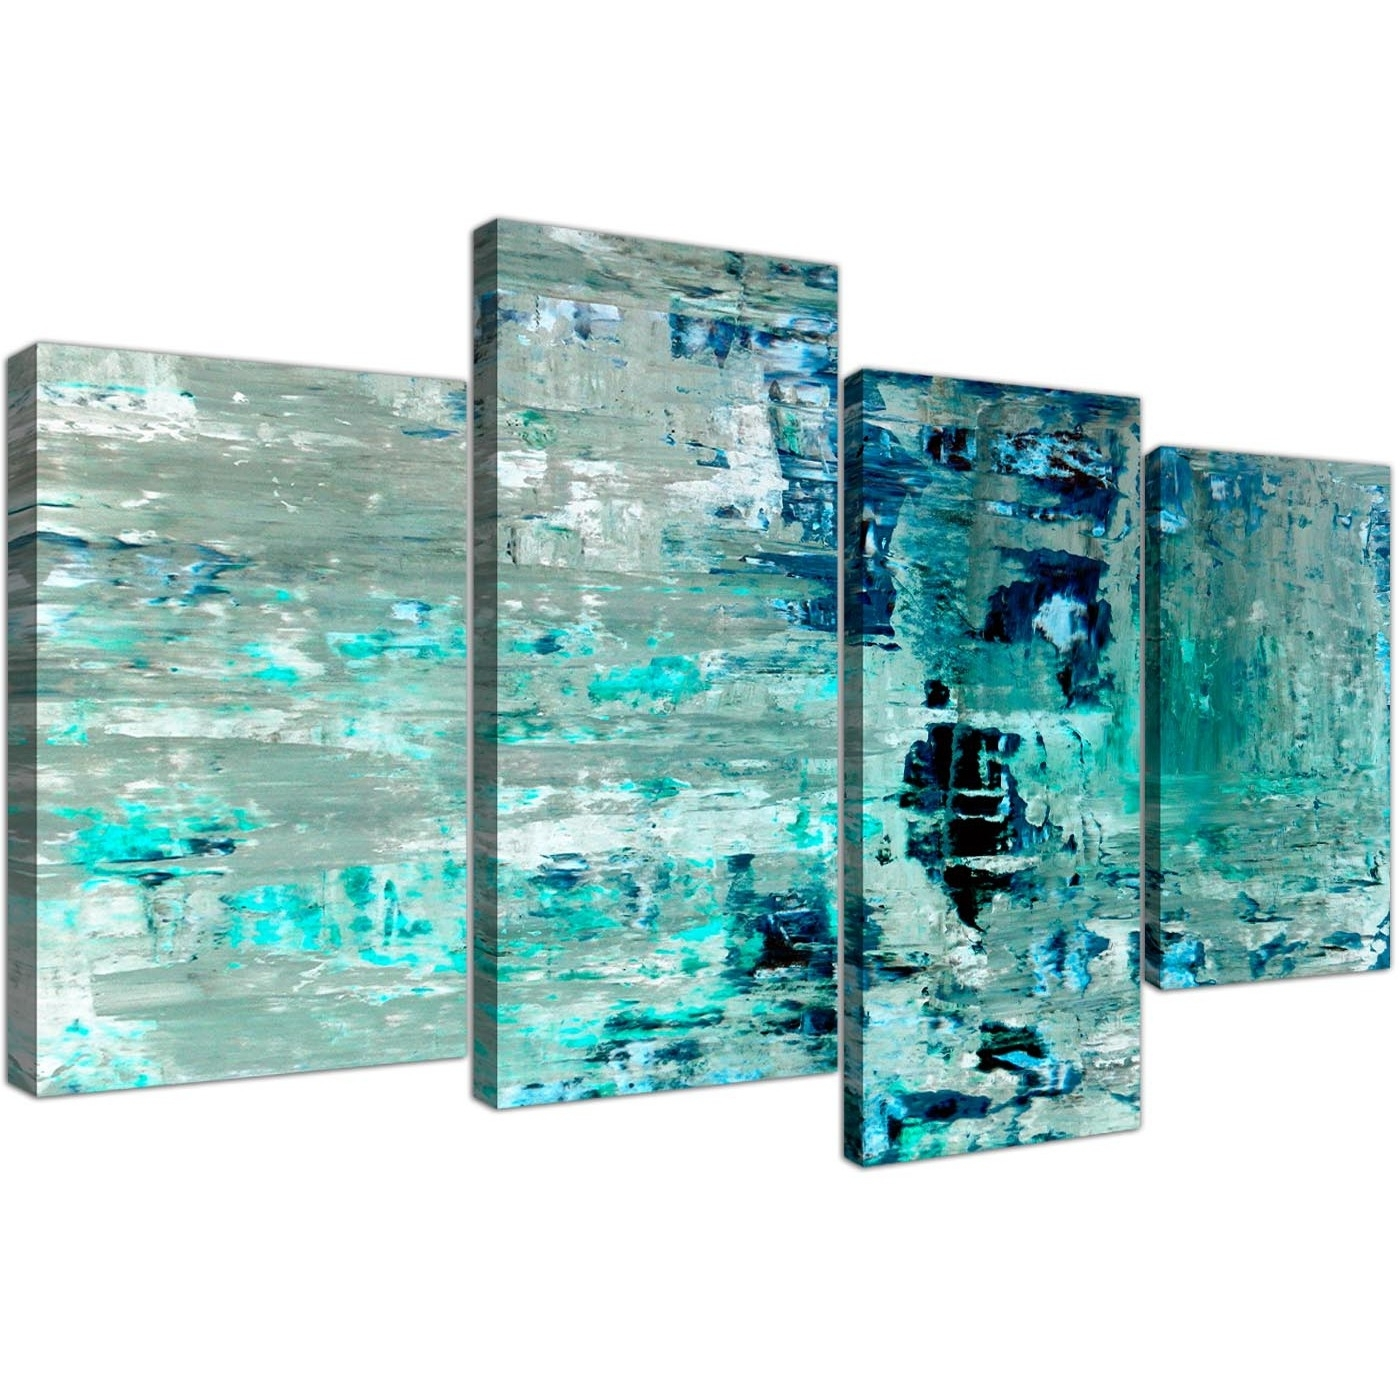 Large Turquoise Teal Abstract Painting Wall Art Print Canvas - Multi within Teal Wall Art (Image 11 of 20)